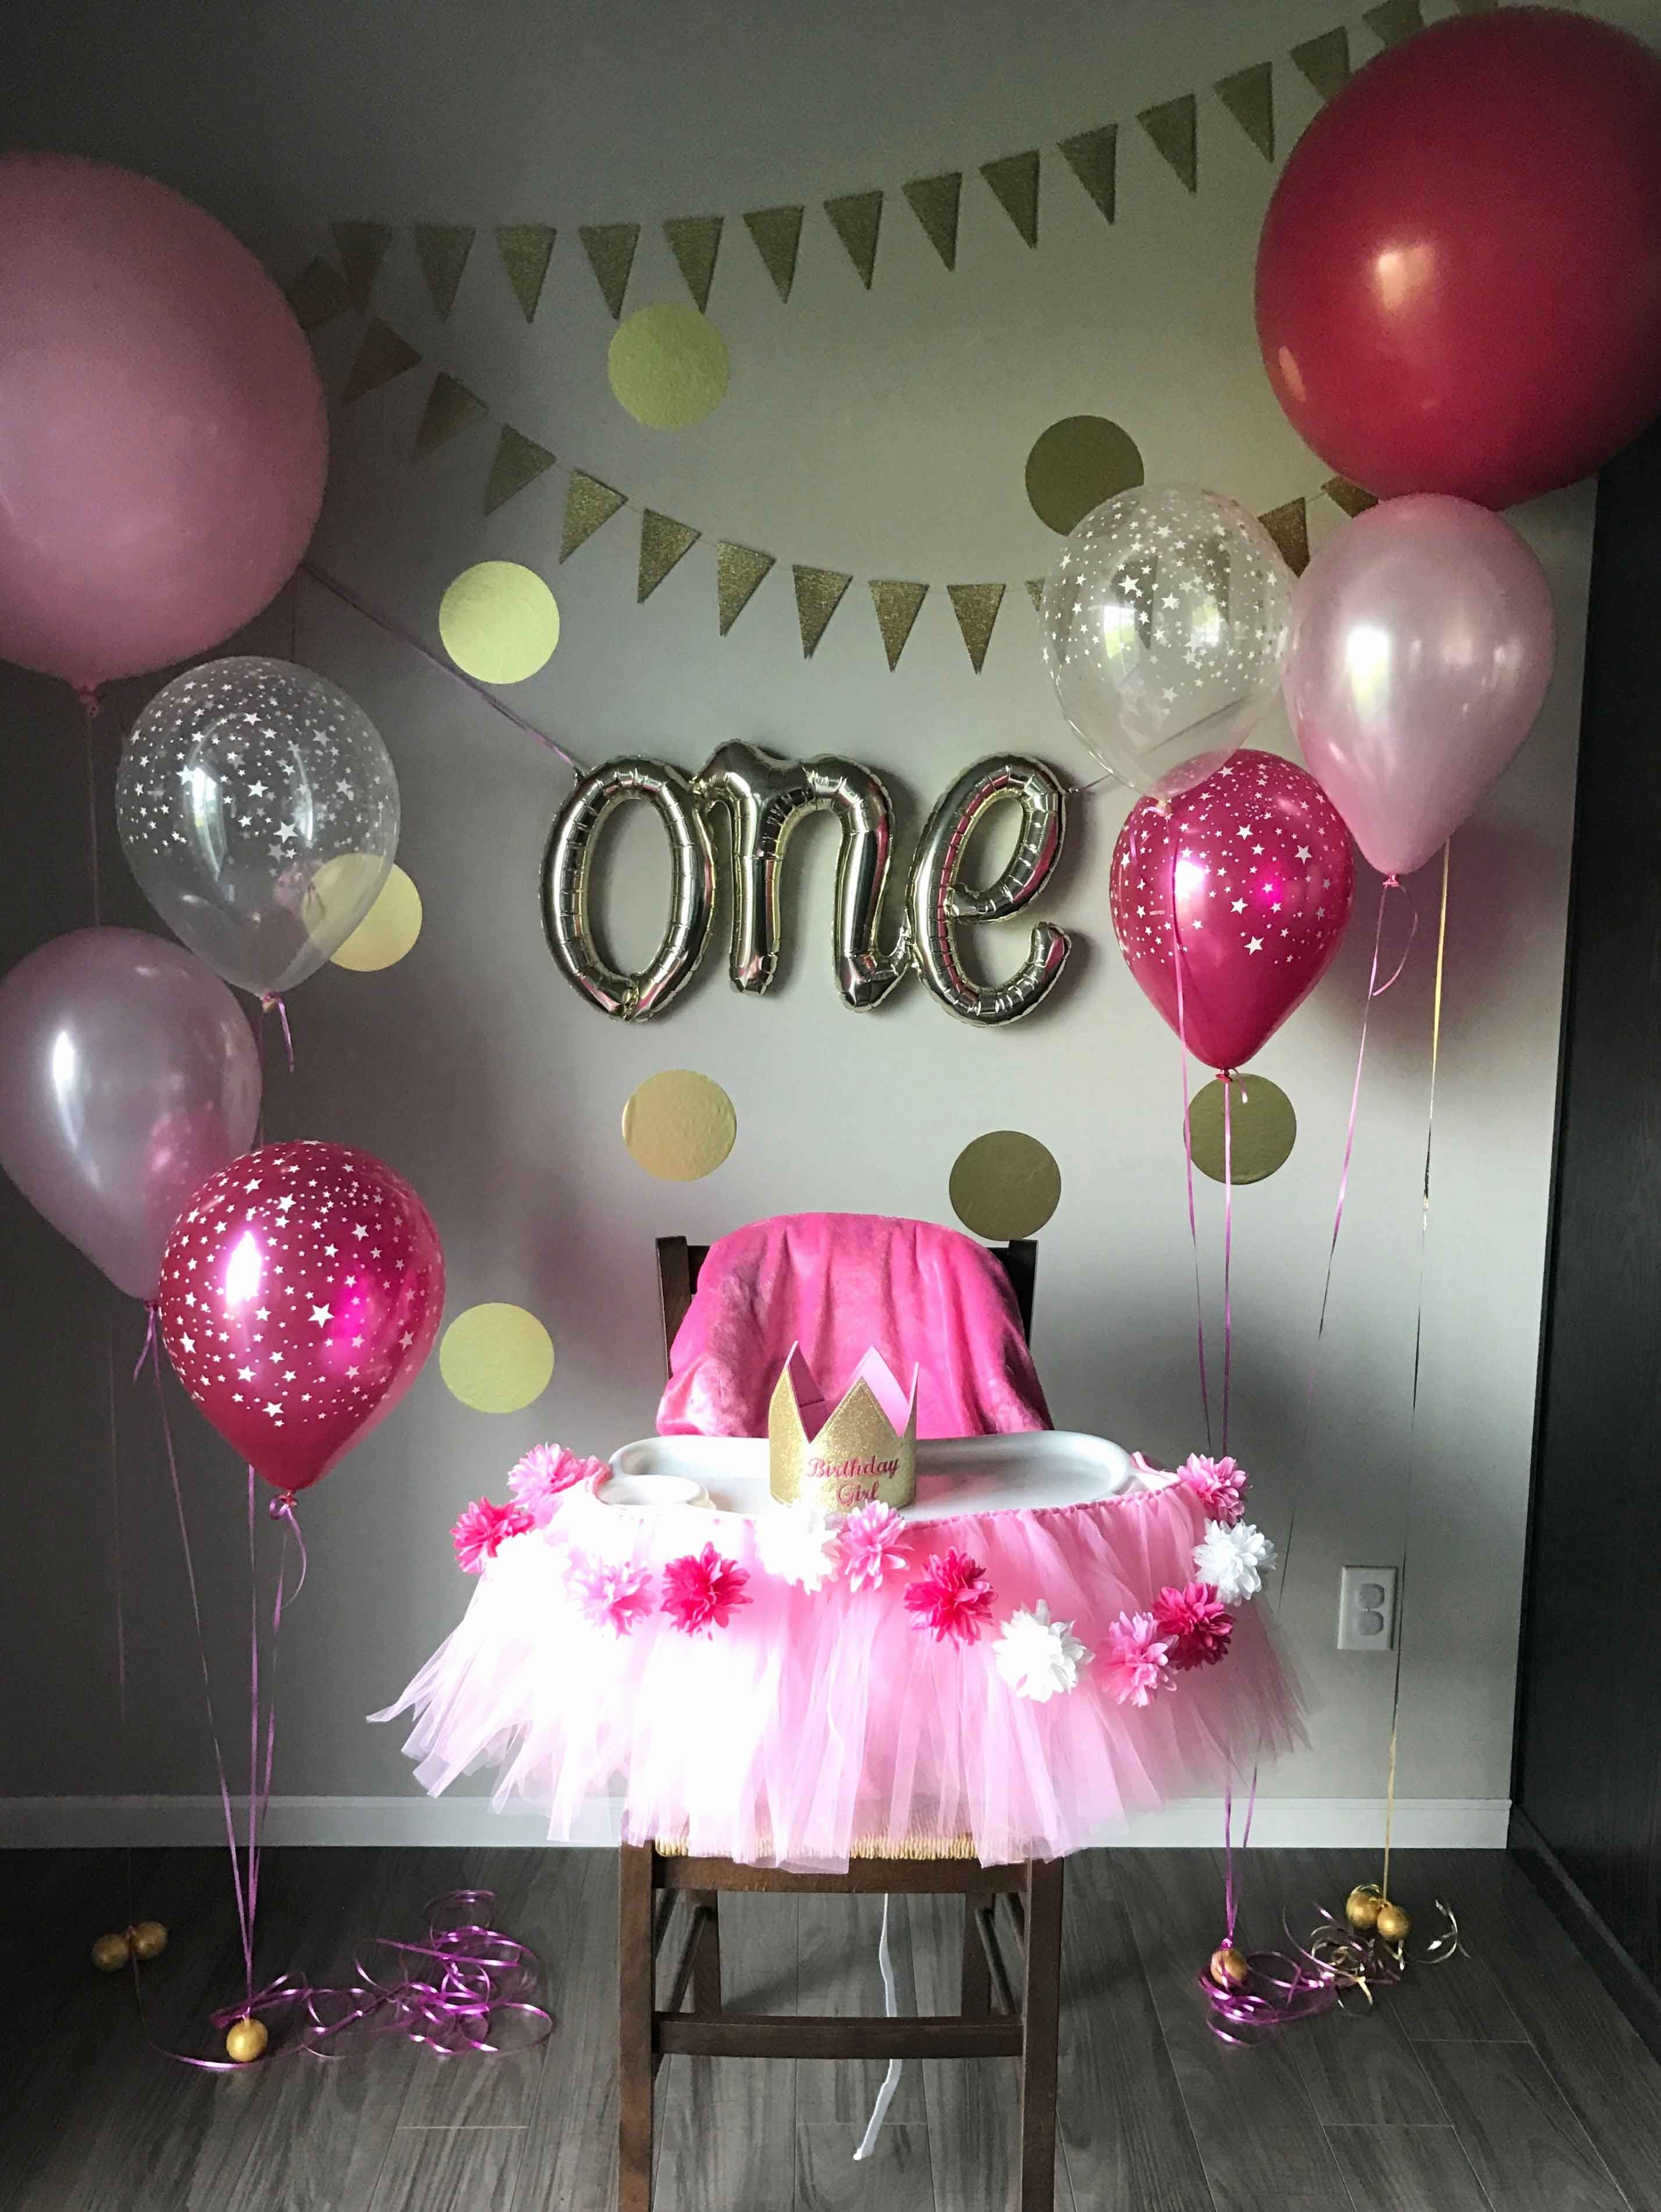 Home Decoration For Birthday Home Decorating Birthday Decorations Baby 1st Birthday Baby First Birthday